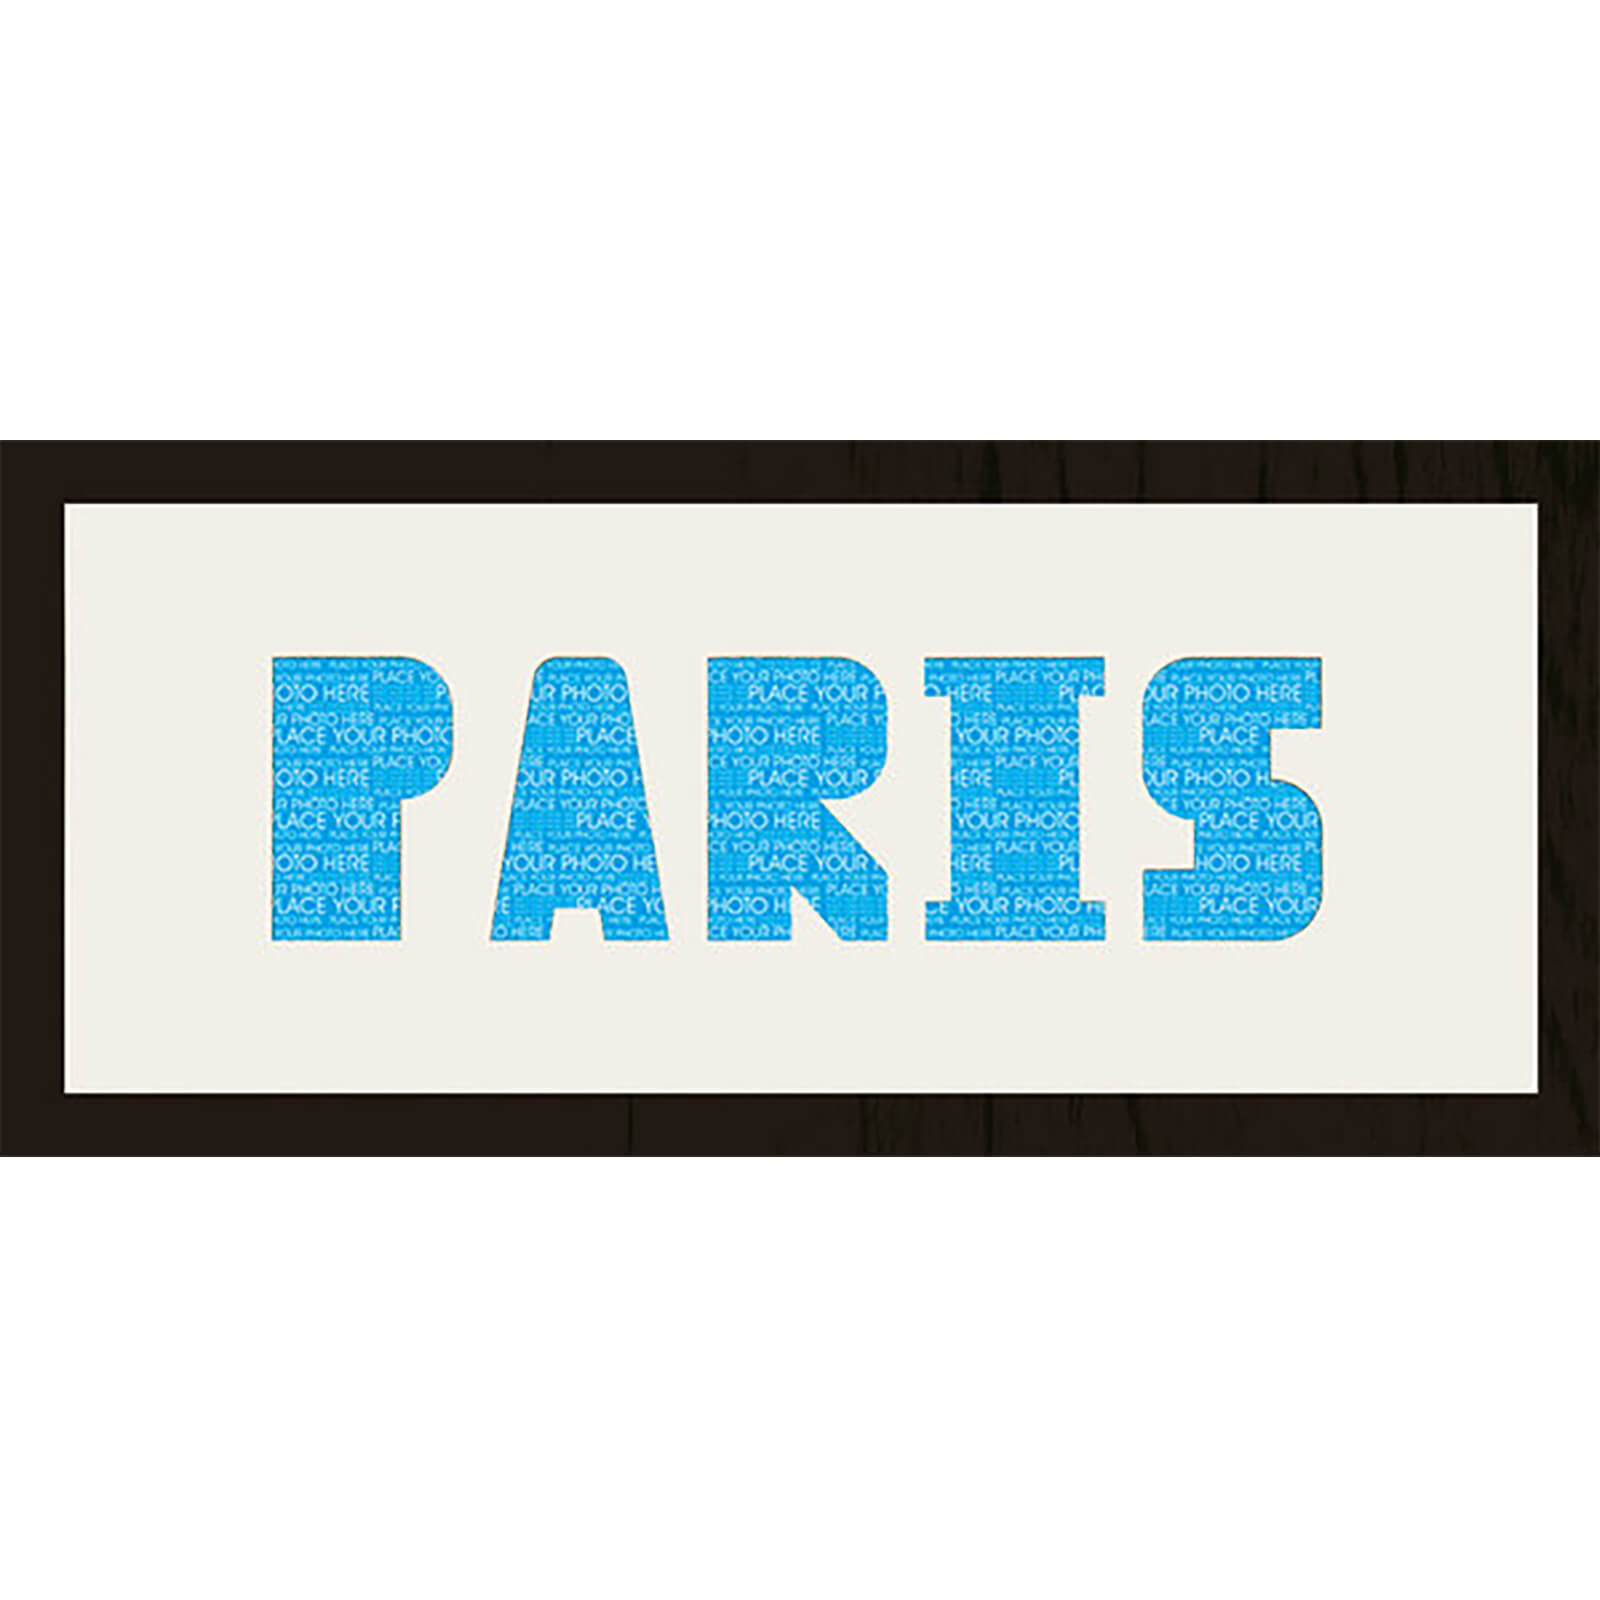 "GB Cream Mount Paris Photo Font - Framed Mount - 12"""" x 30"""